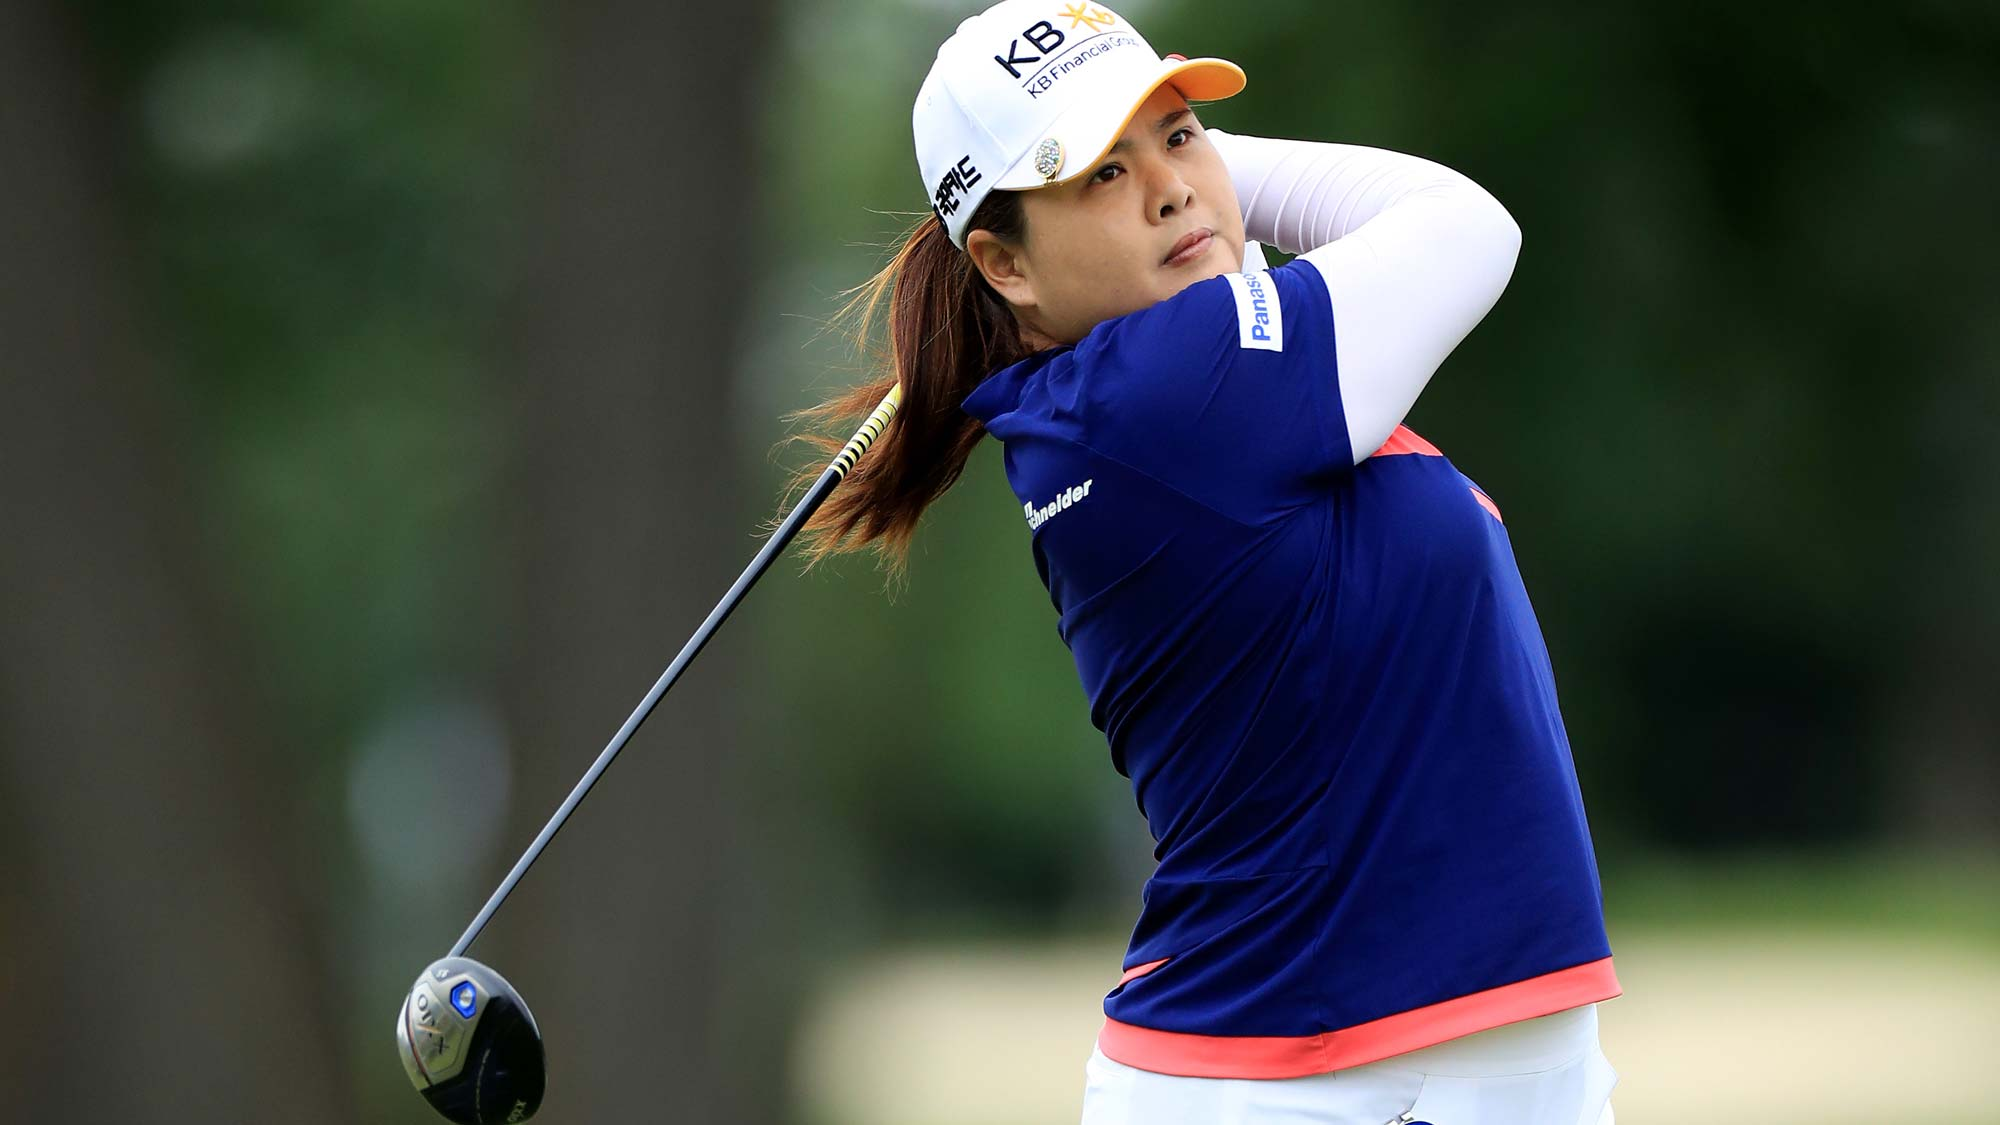 Inbee Park of South Korea plays her tee shot on the par 5, seventh hole during the third round of the 2019 Women's PGA Championship